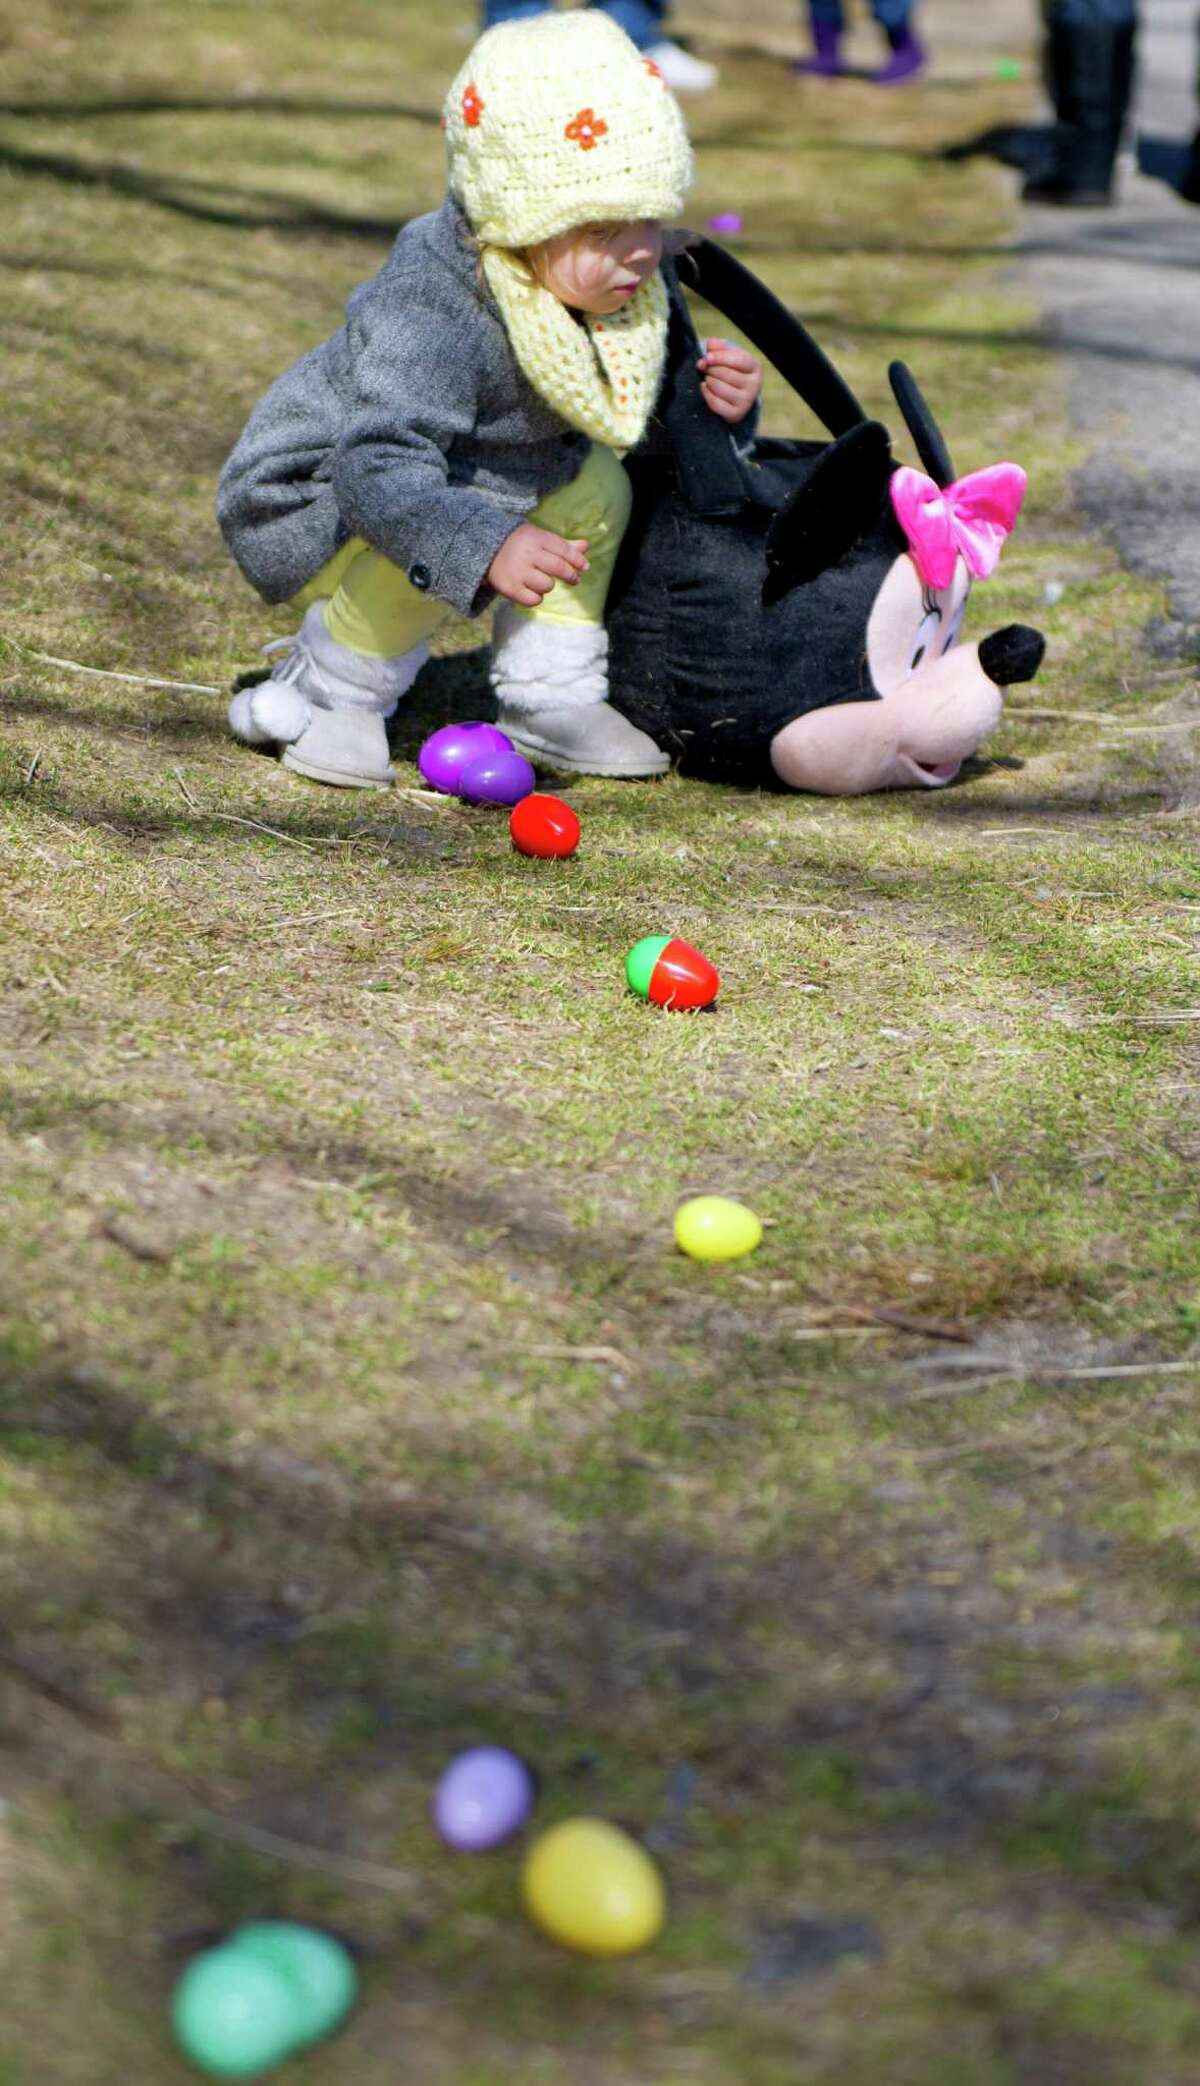 Amelia Bialczak, 1, collects eggs during the 9th Annual Heckscher Farm Egg Hunt on Saturday, March 30, 2013.